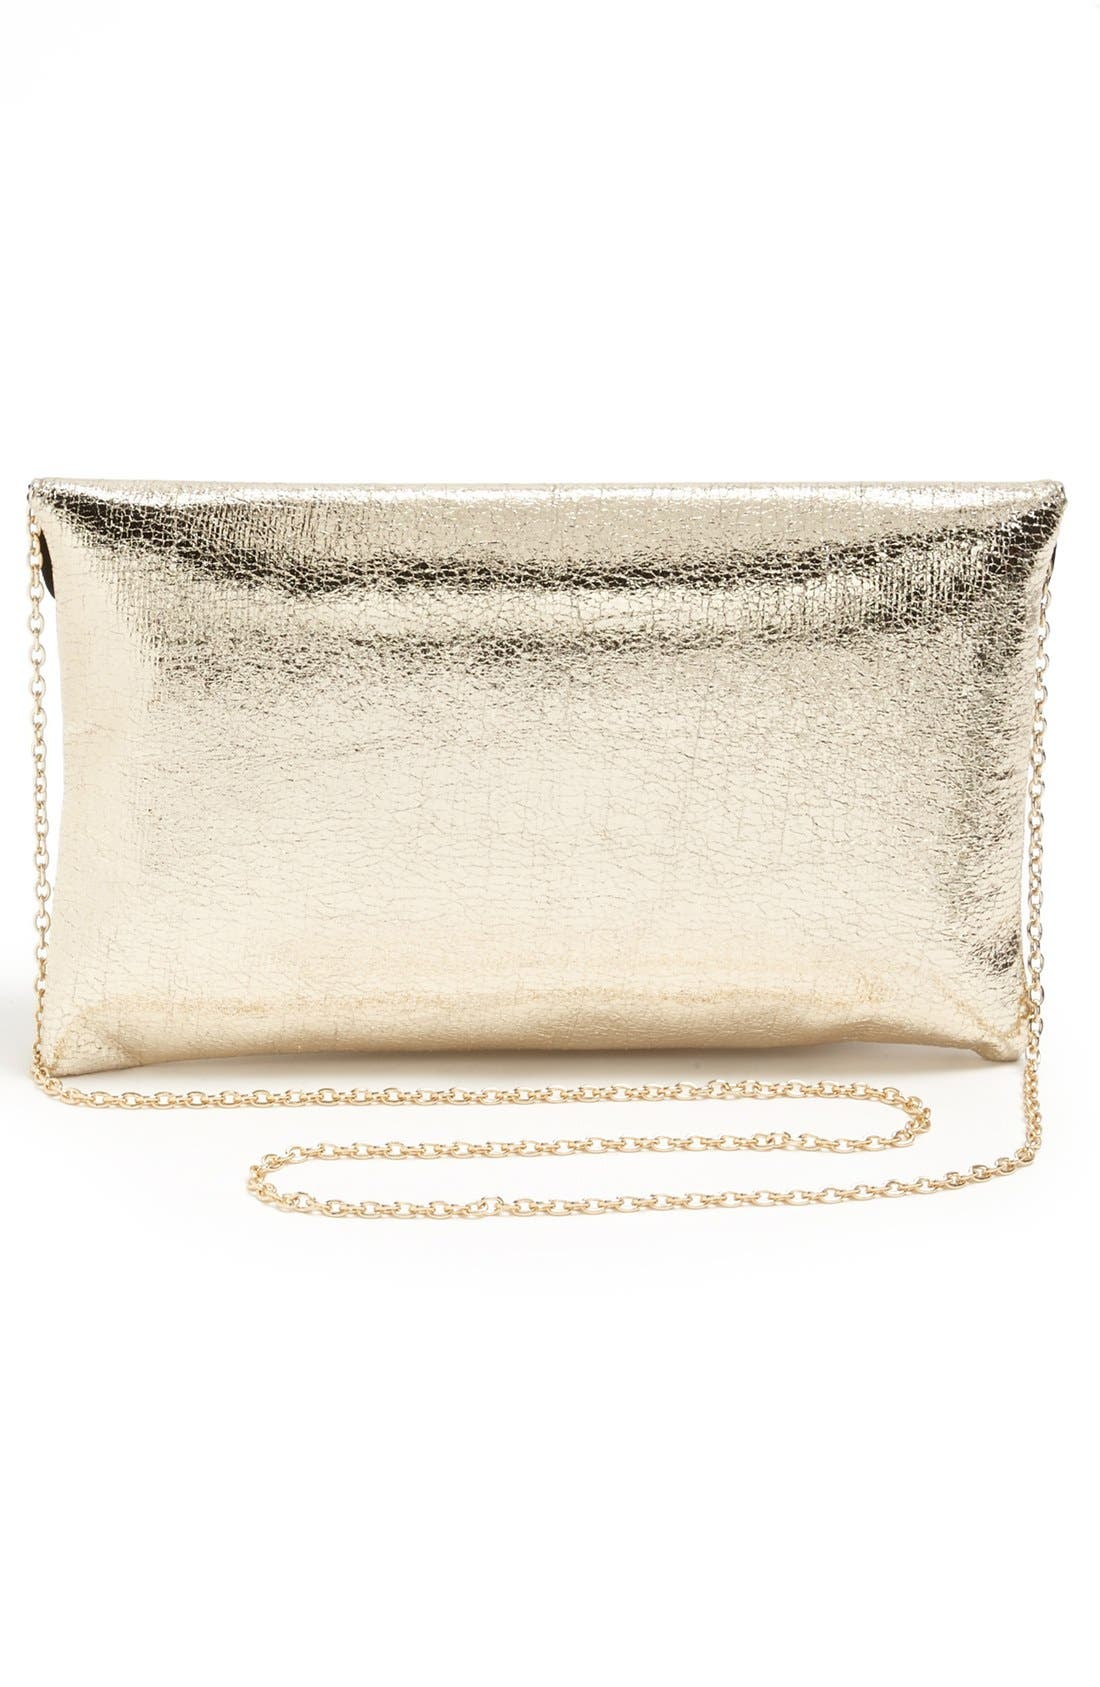 Alternate Image 3  - Expressions NYC 'Crackle' Envelope Clutch